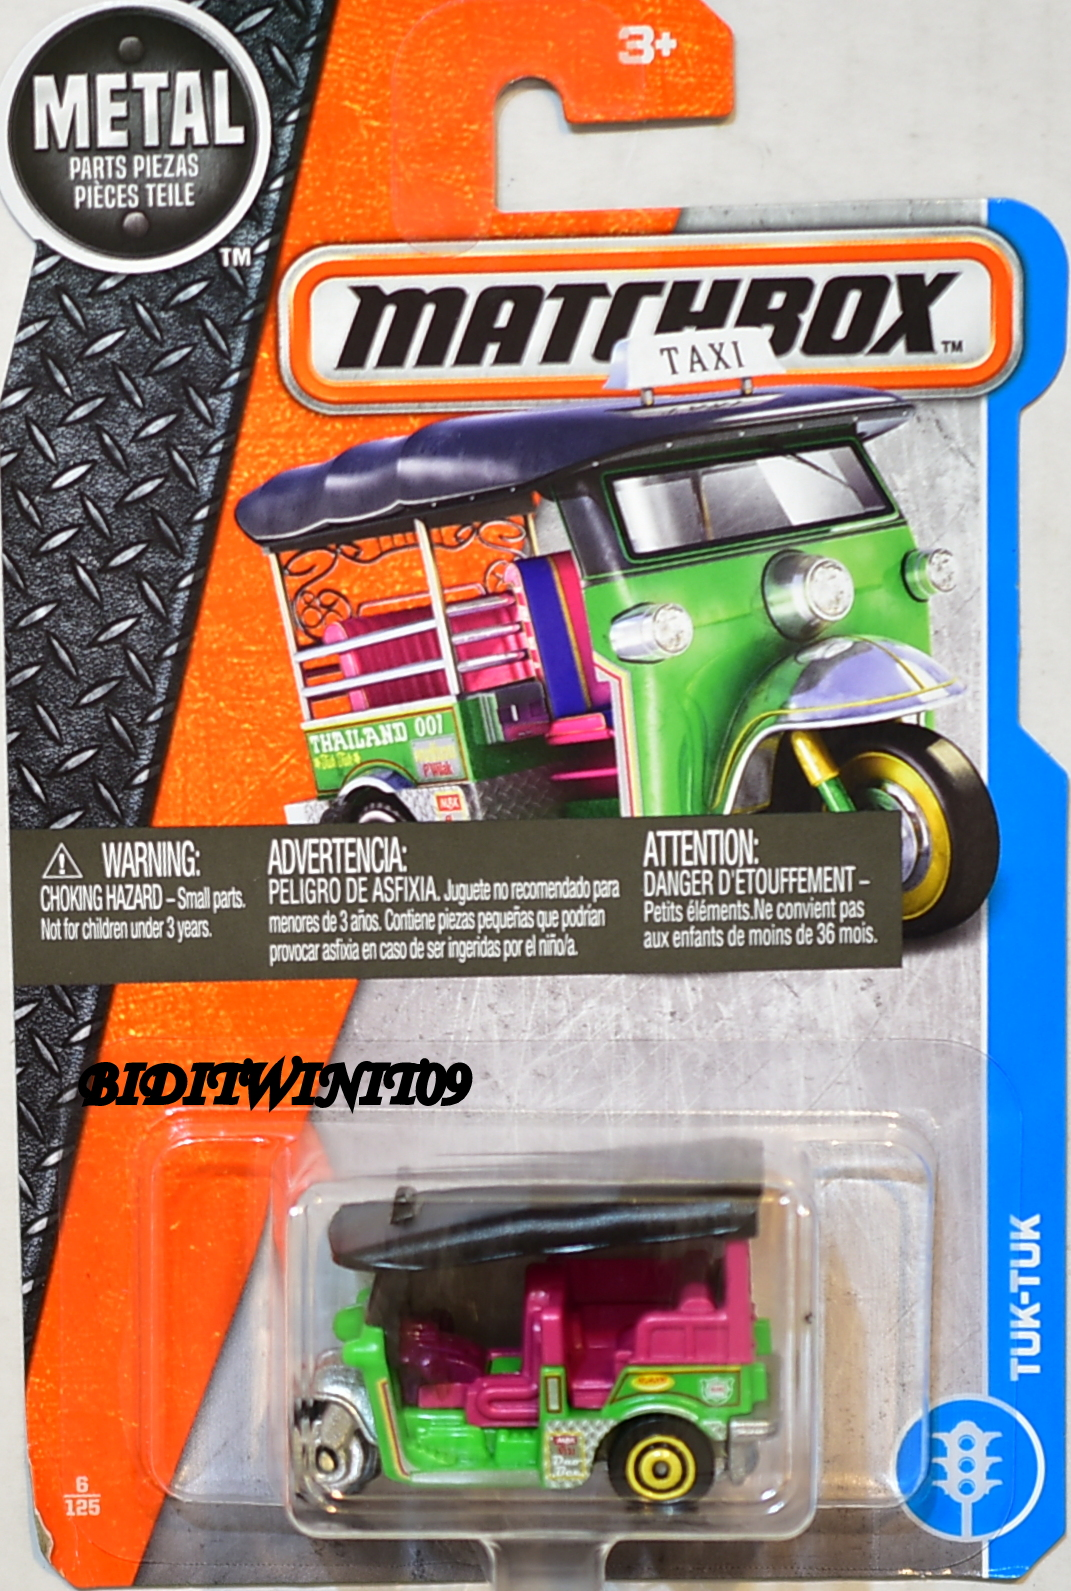 MATCHBOX 2017 METAL PARTS PIEZAS TUK-TUK